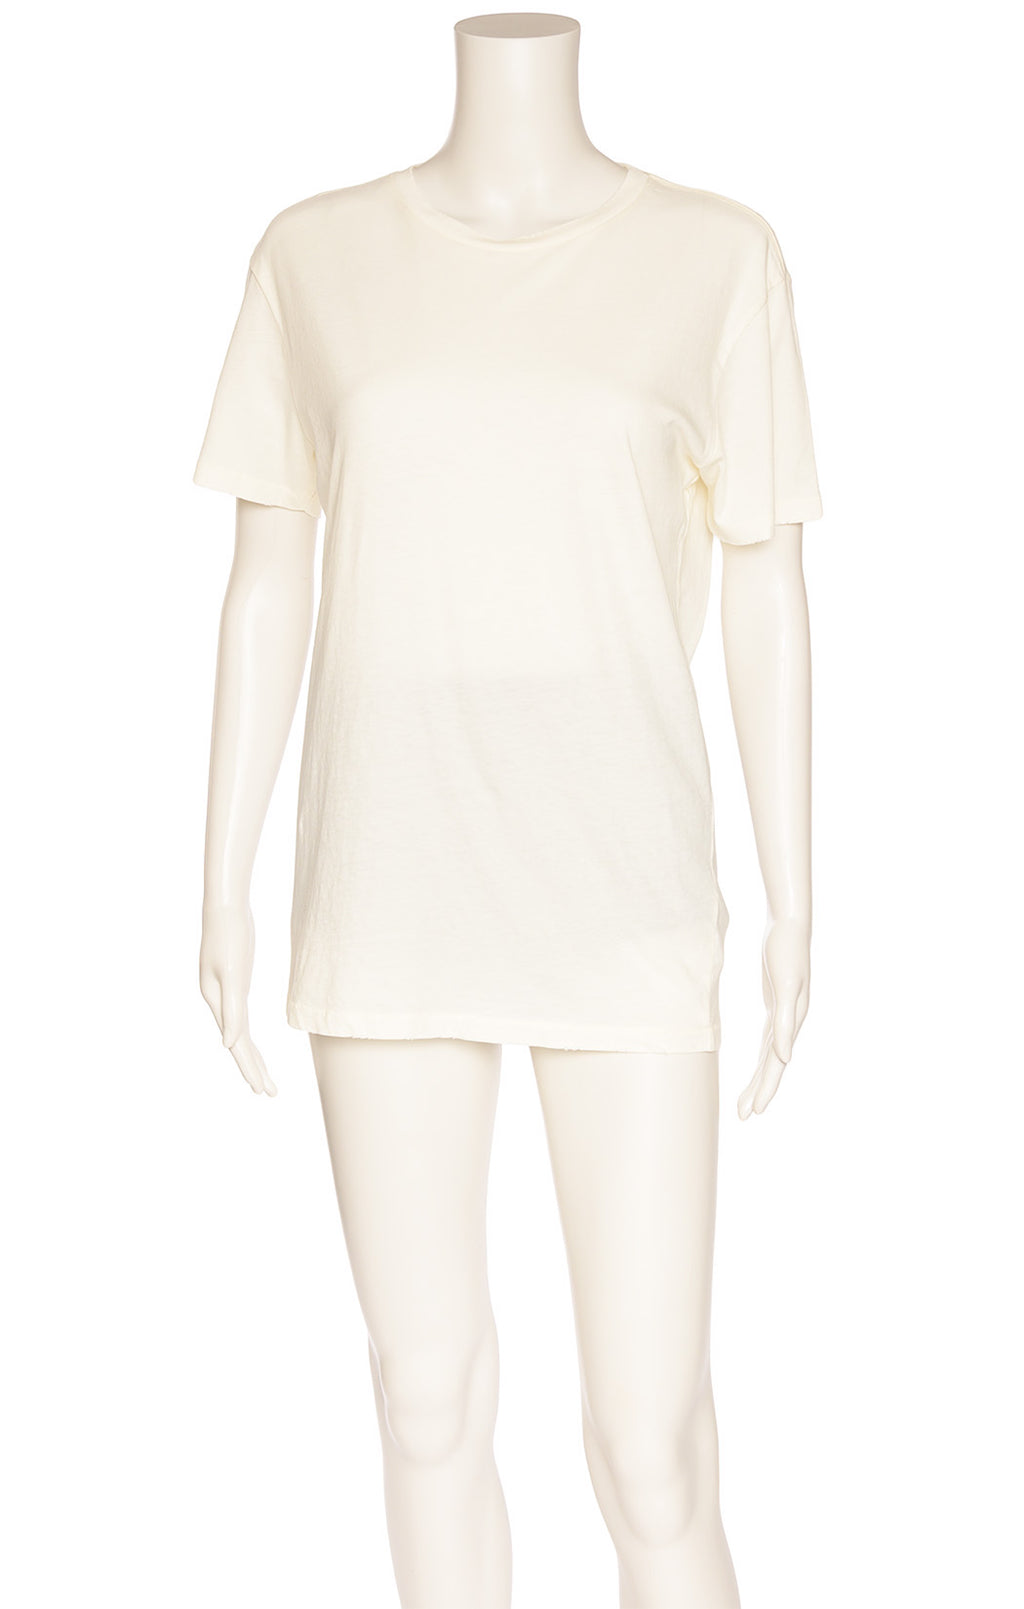 Off white short sleeve t-shirt with frayed edges